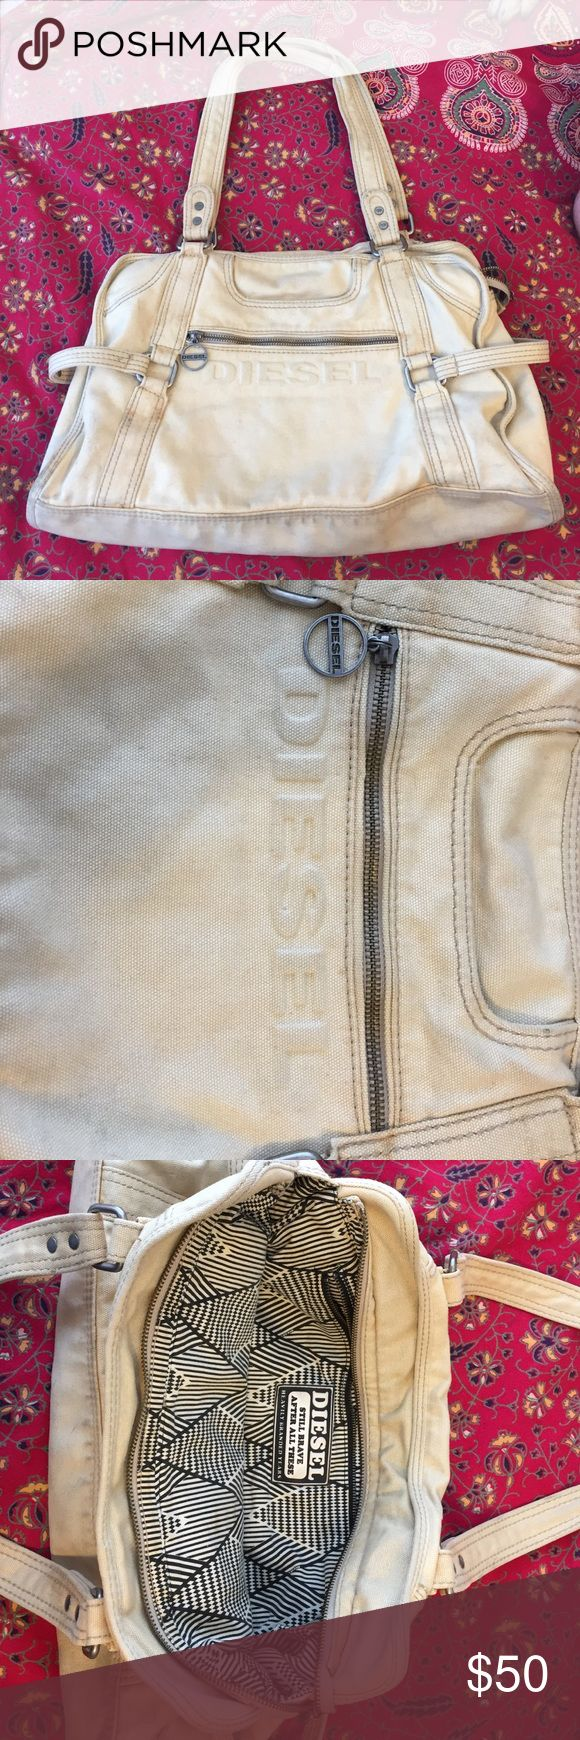 Diesel Large Purse This tan Diesel purse is large enough to carry all your daily necessities or take on a trip. It is in good condition, has tons or pockets and is a tan, neutral color that goes with anything! Diesel Bags Shoulder Bags